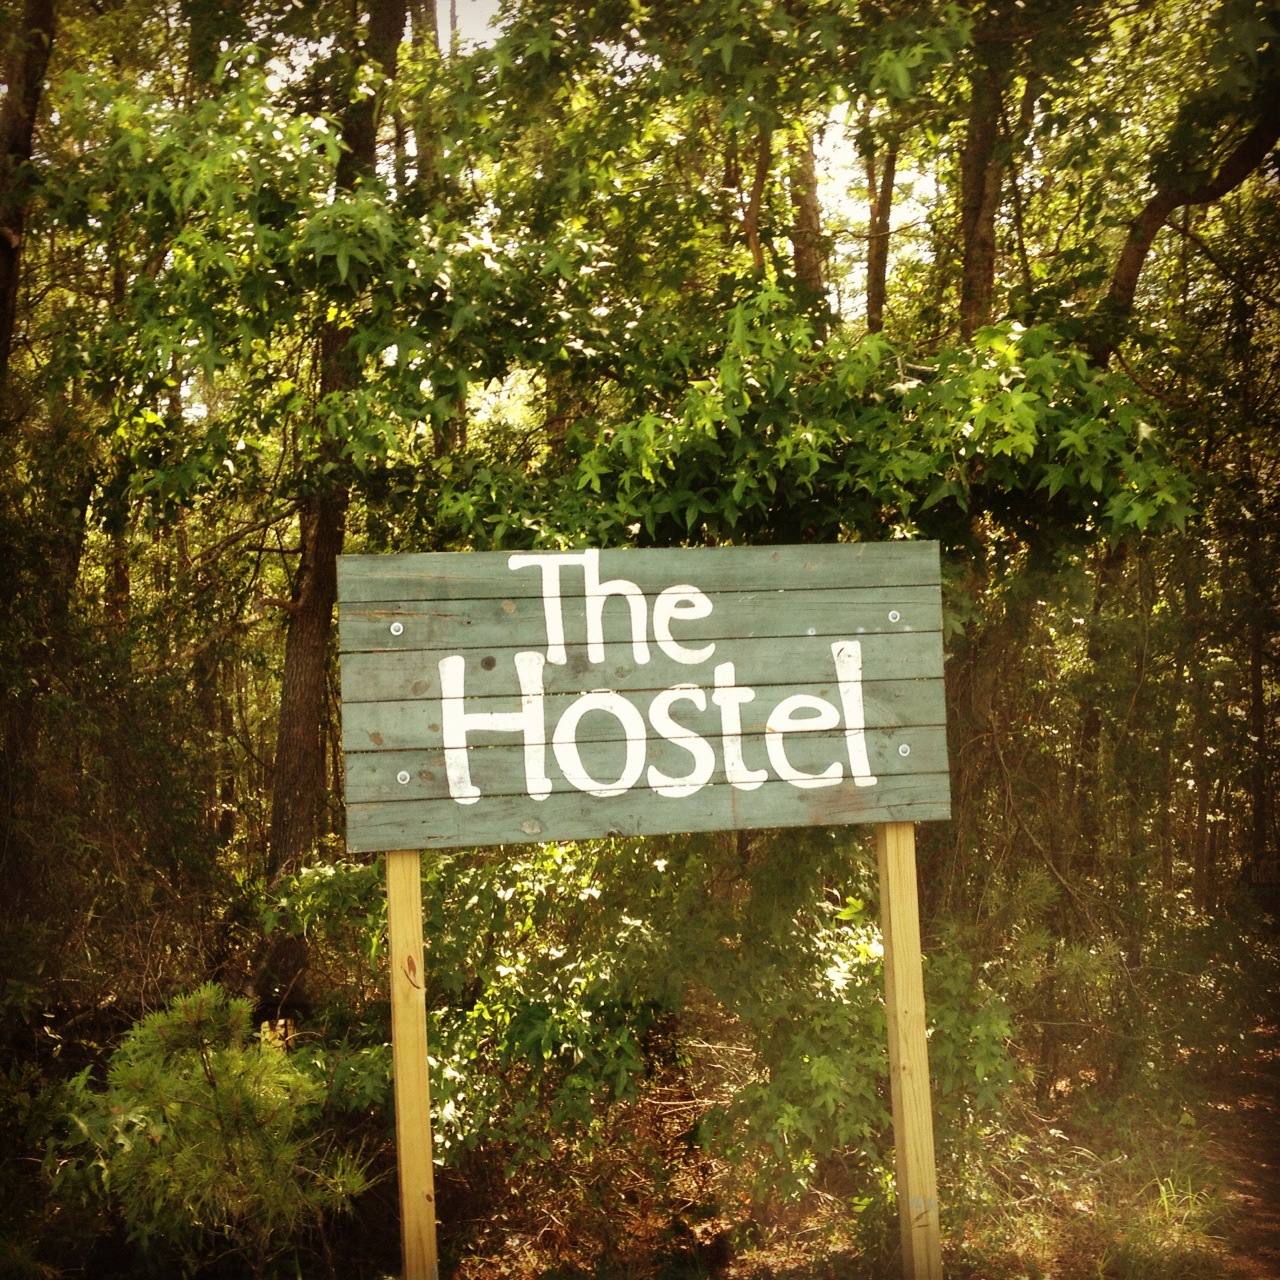 10 Things that I loved and learned at The Hostel in the Forest: